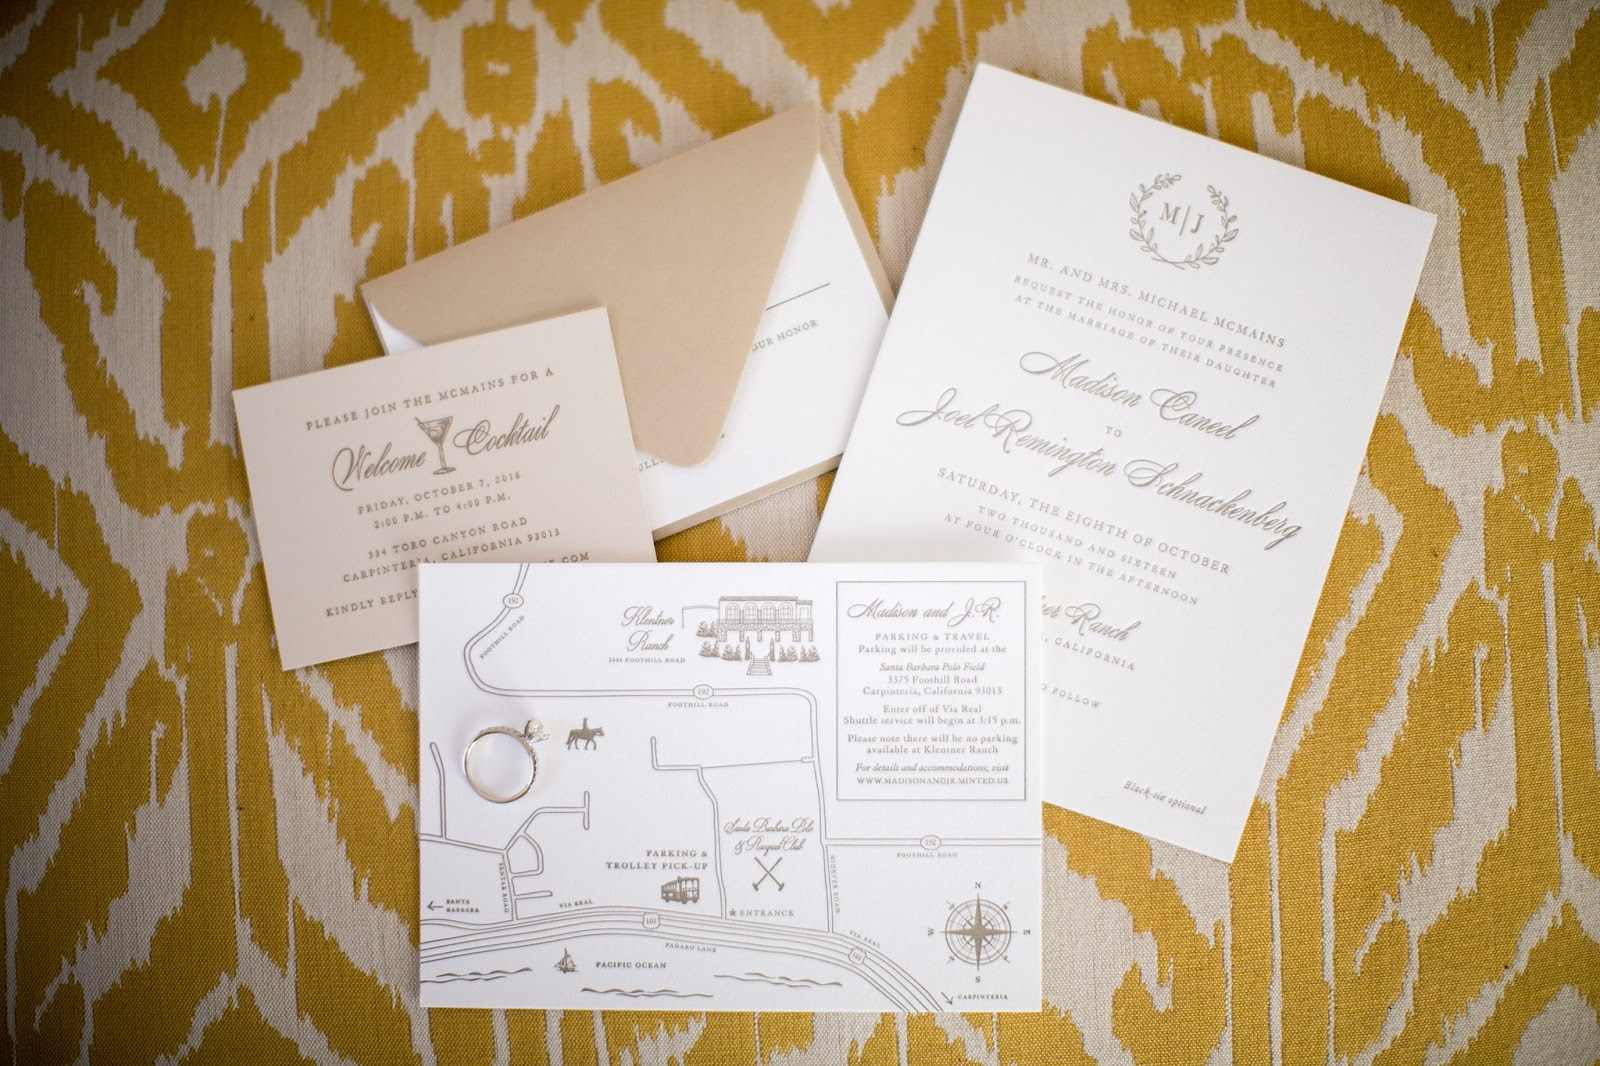 Santa Barbara Wedding Invitations | Sweetly Said Press